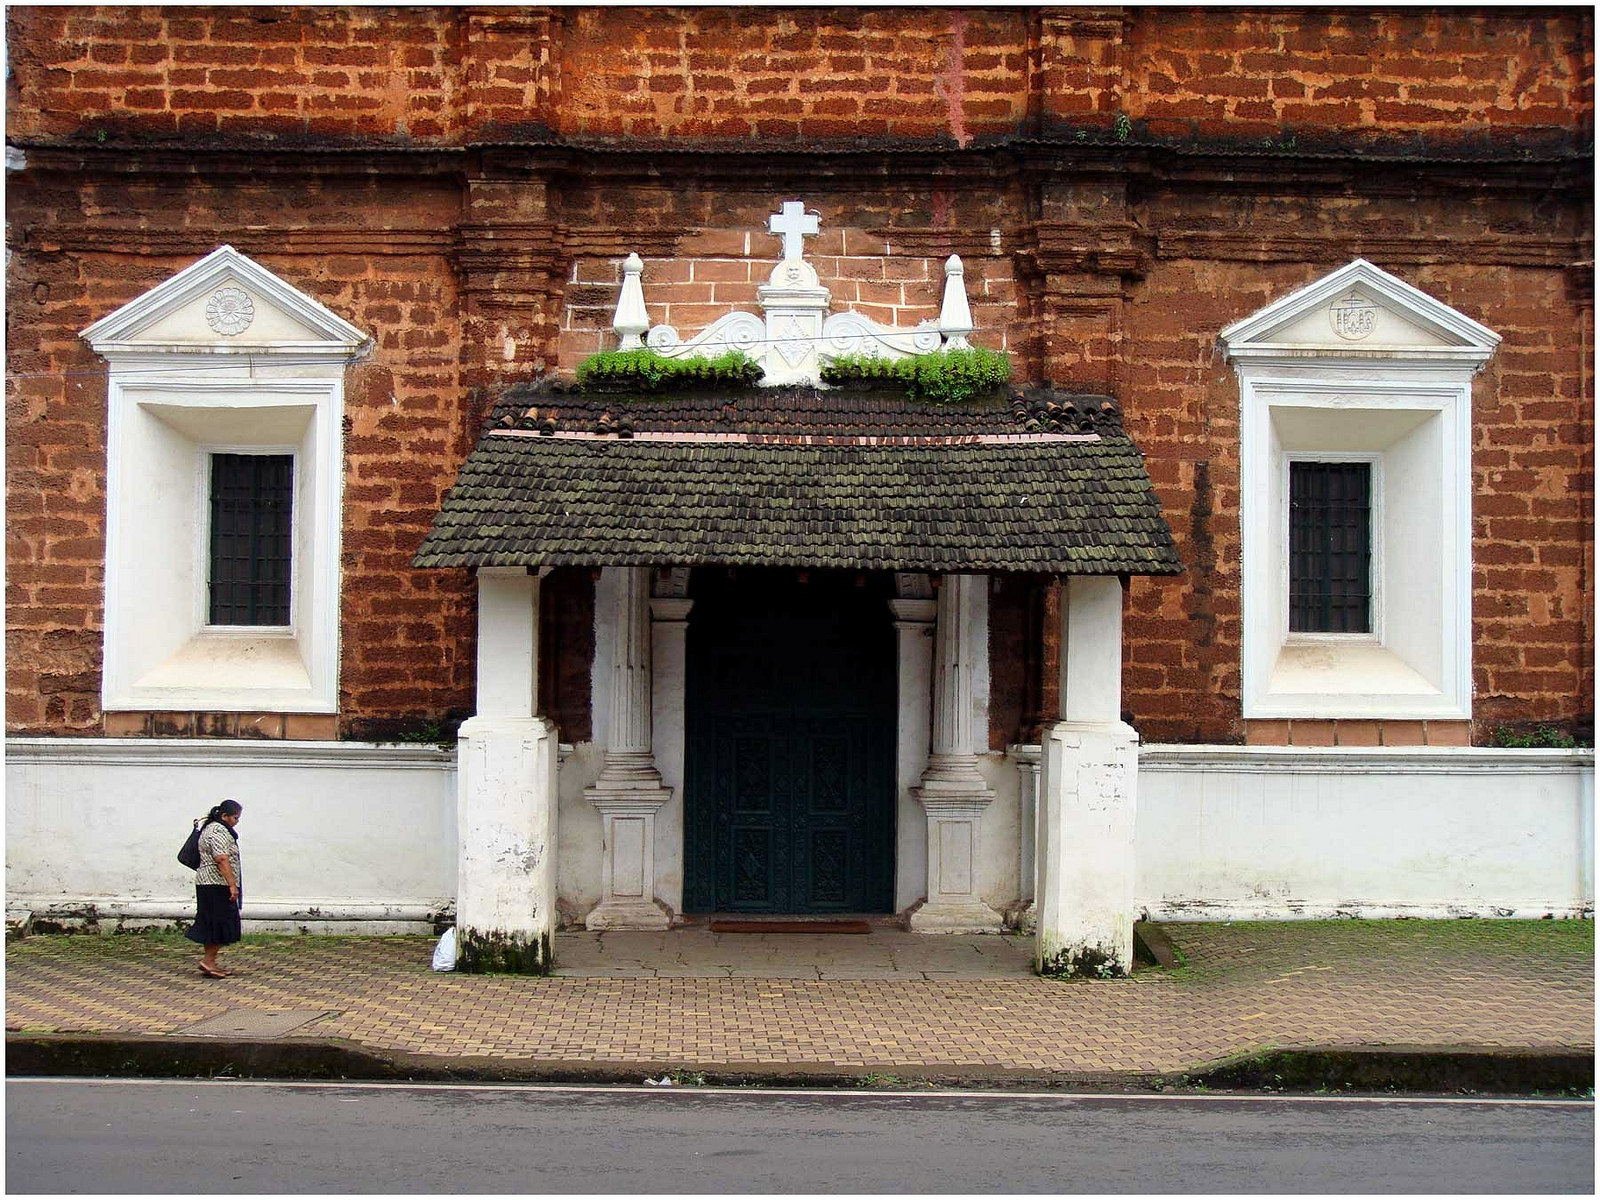 Holy Spirit Church in Margao, Goa. Photo credit: Ramnath Bhat via Flickr [Licensed under CC BY 2.0]